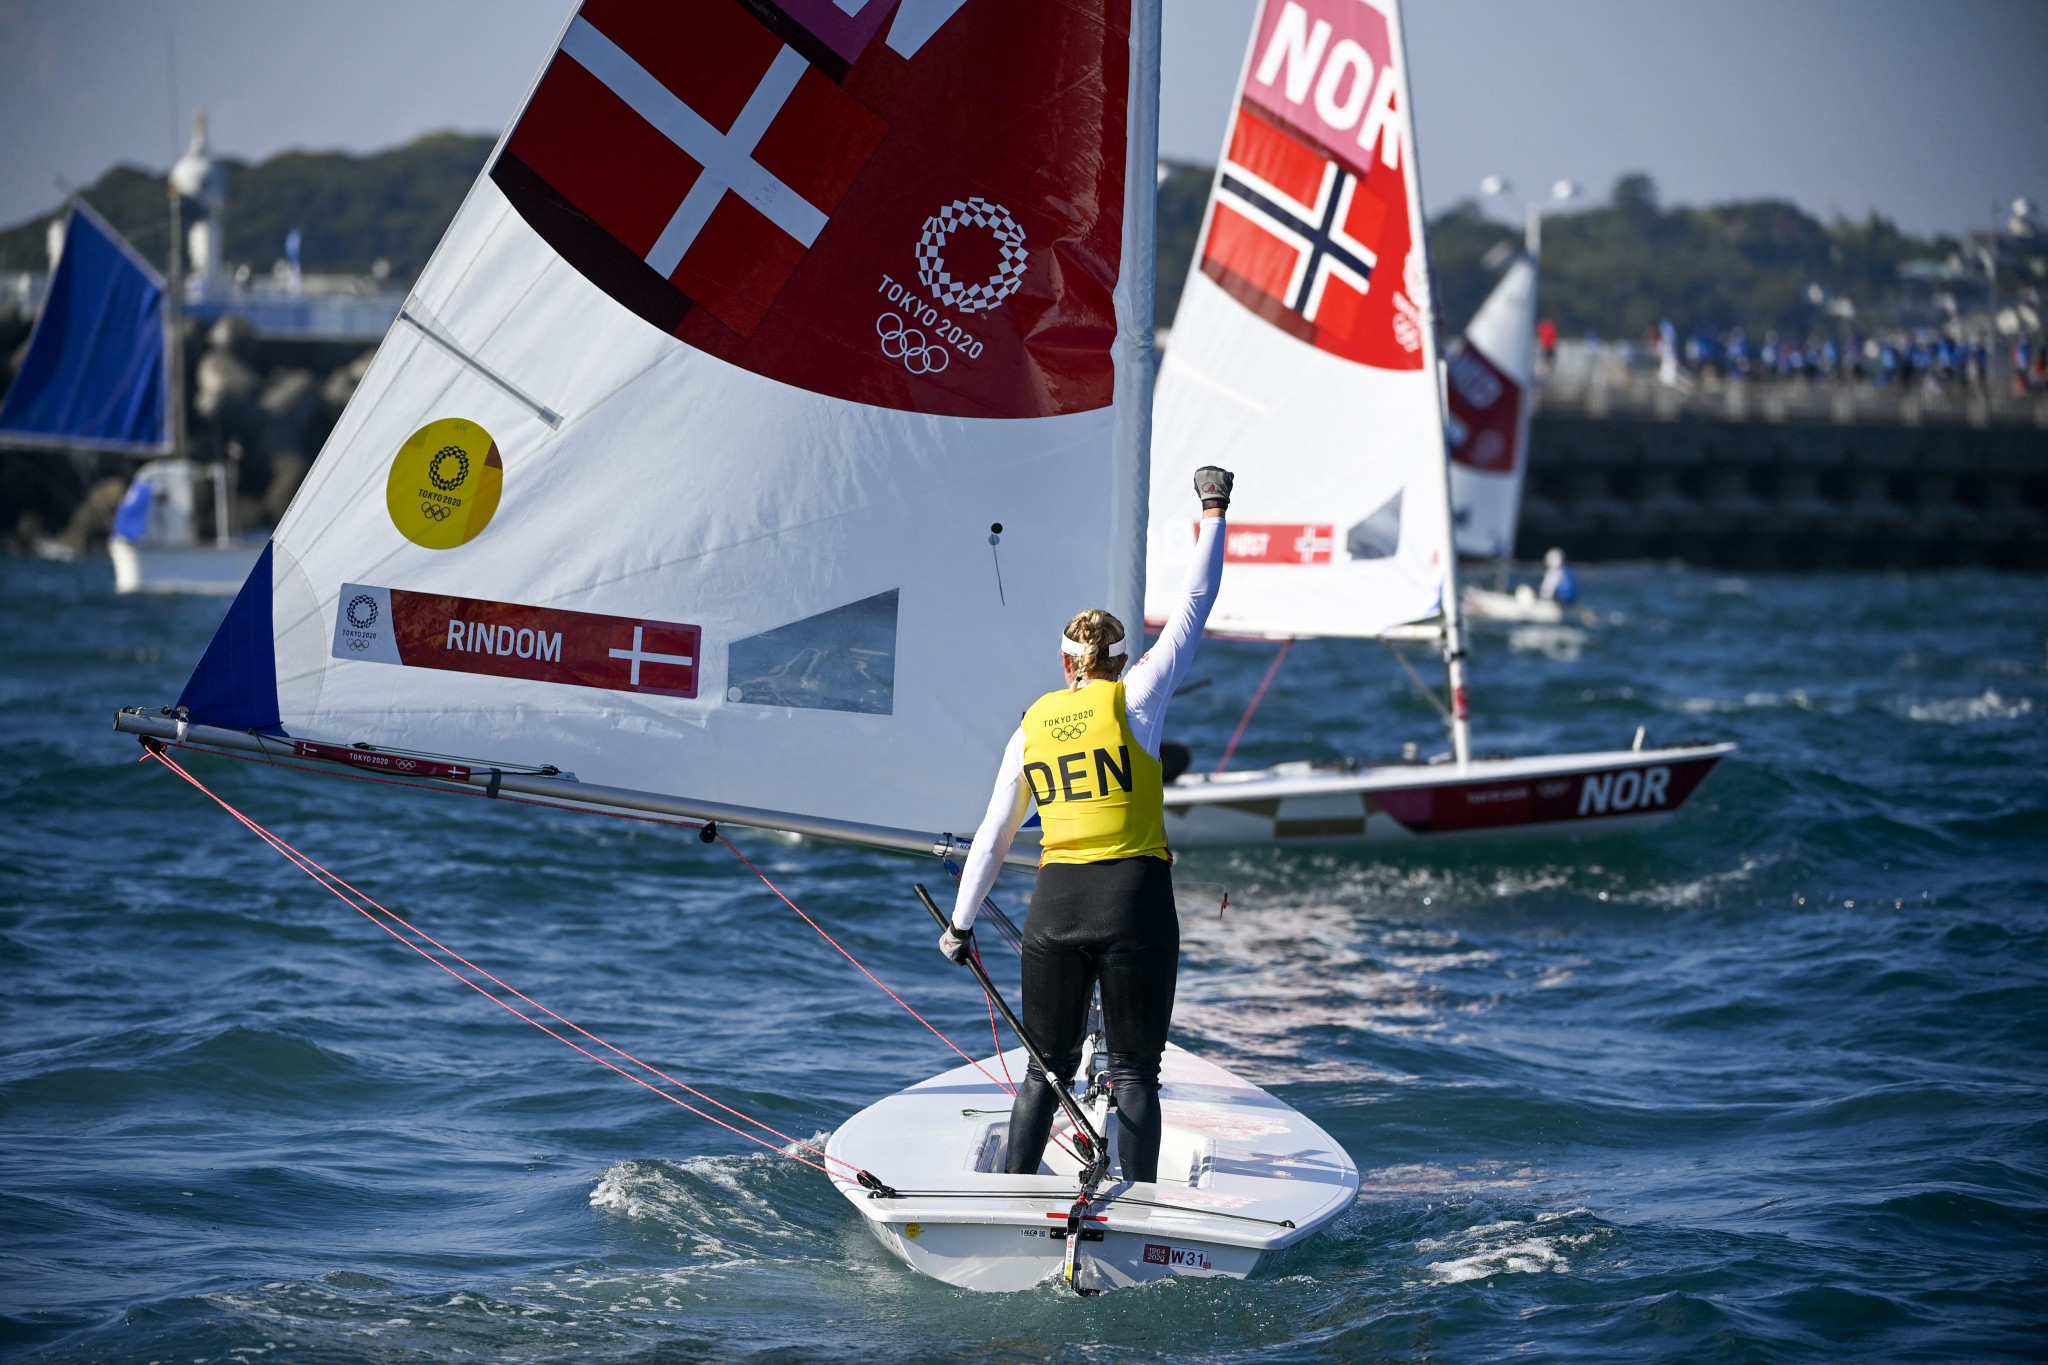 Denmark's Anne-Marie Rindom at one stage thought she had been disqualified, but ended the women's laser radial competition as the new Olympic champion ©Getty Images